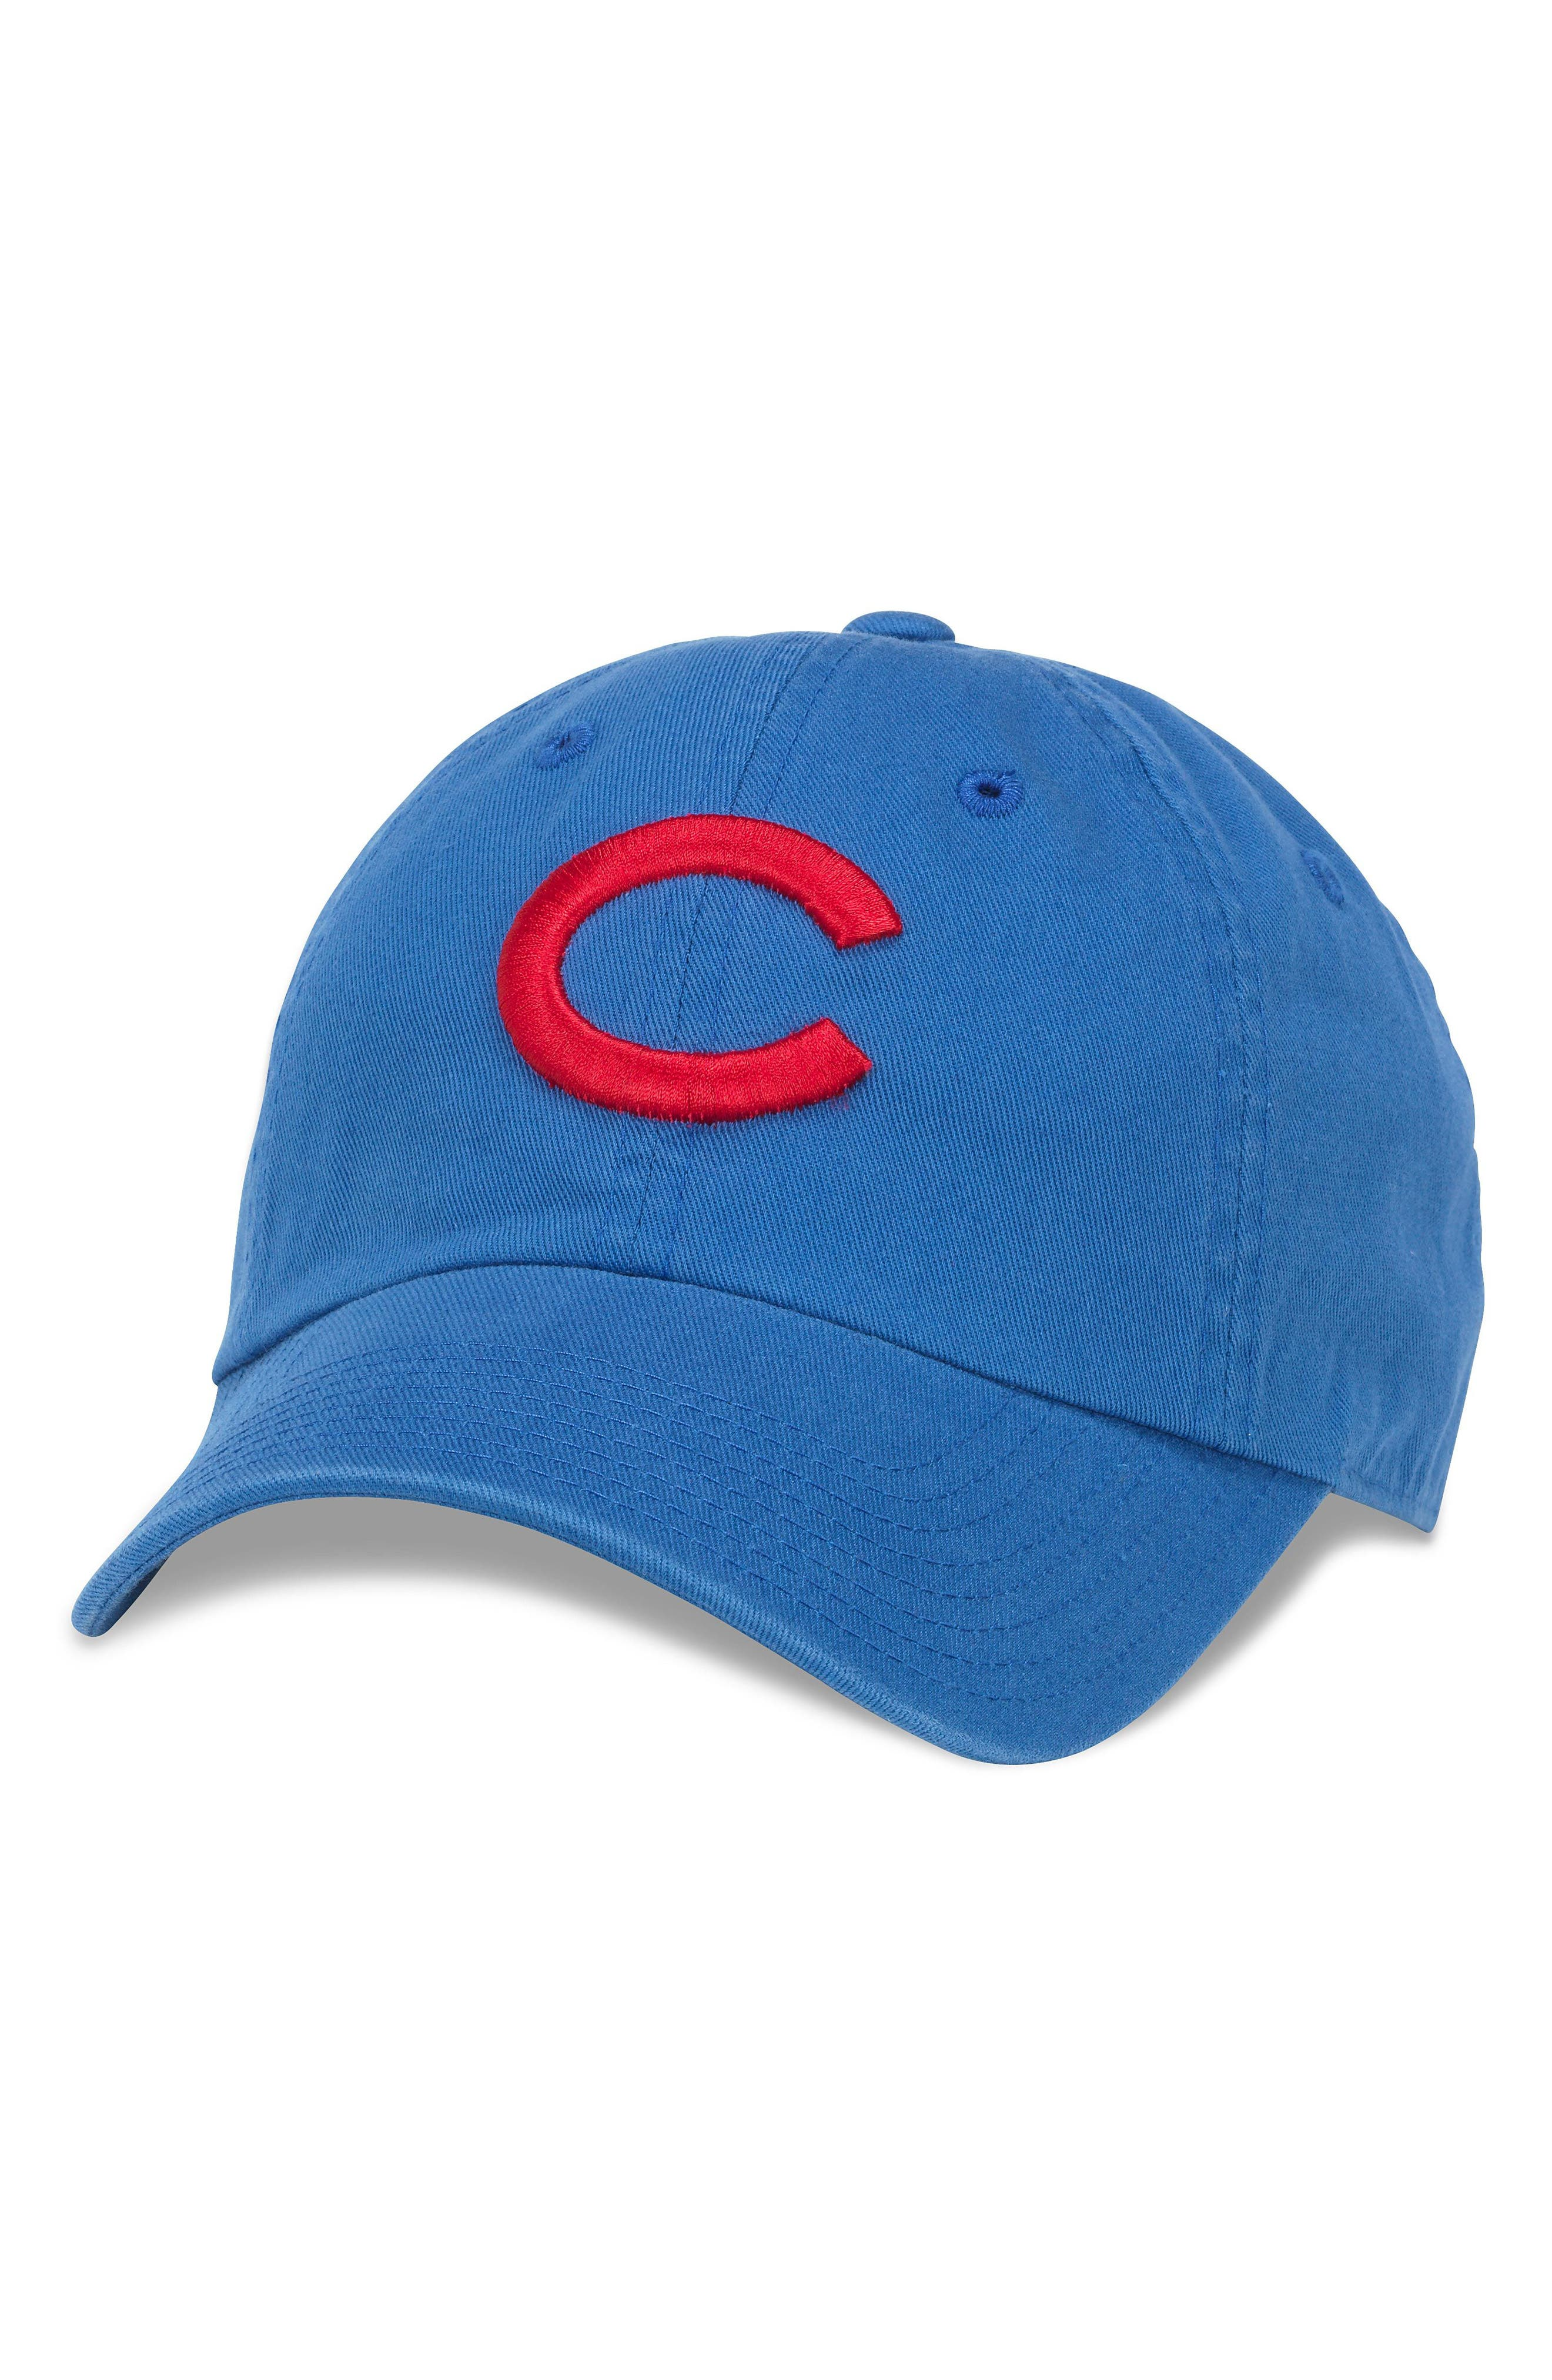 Main Image - American Needle 1938 Chicago Cubs Southpaw Ball Cap